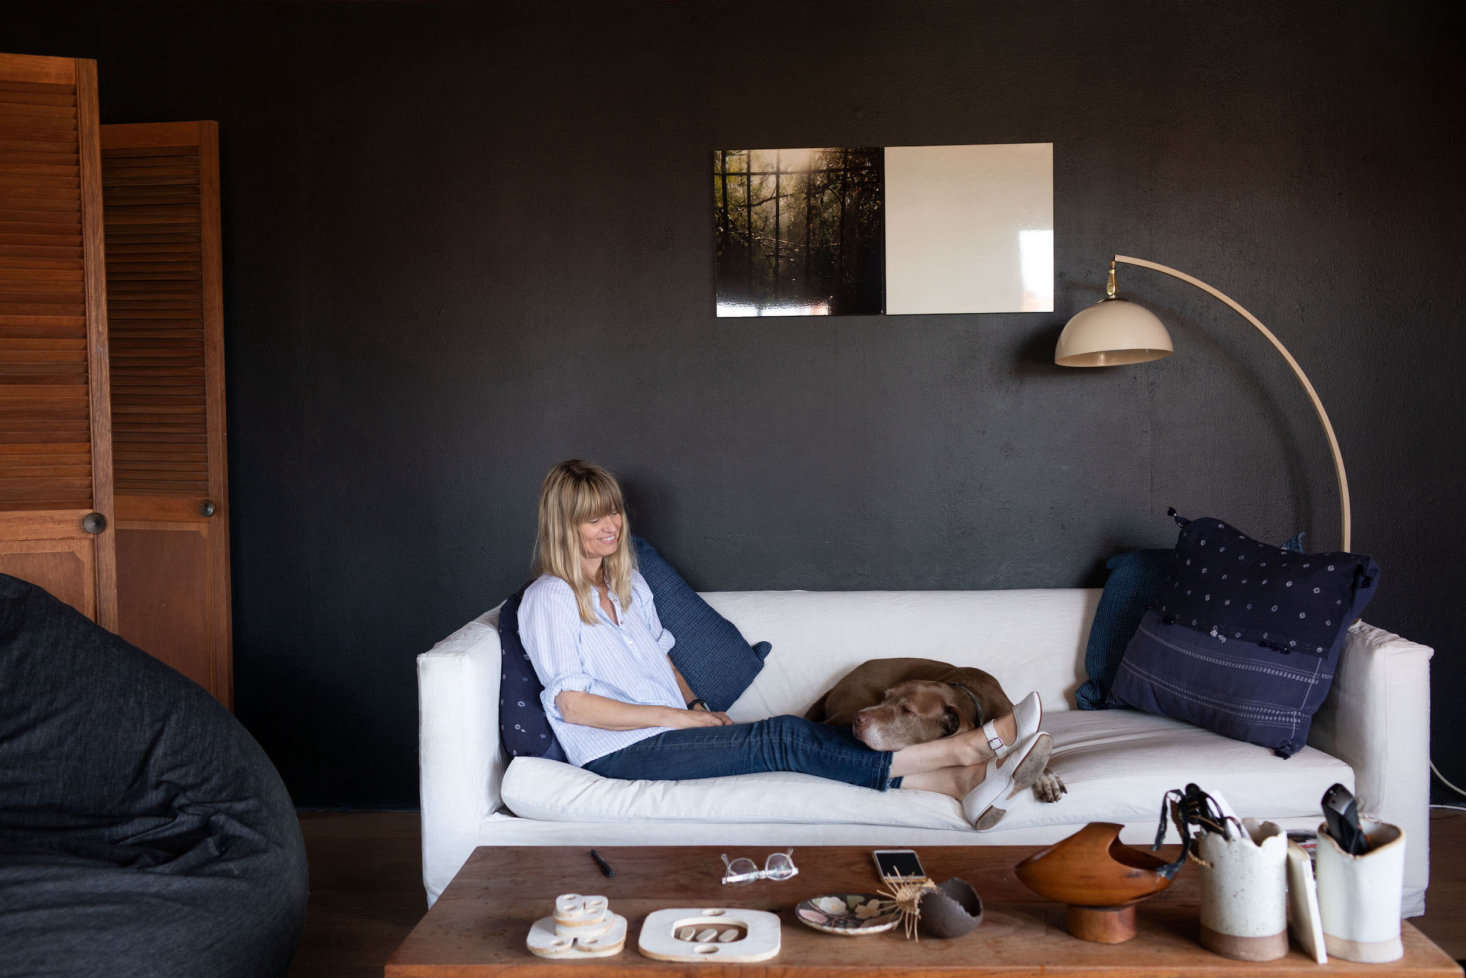 Wilkinson, a British transplant, with her loyal sidekick, Brownie. Displayed on her coffee table are some of her ceramic works. Her home is situated high up in the hills and rests under the glare of direct sunlight; dark interiors offer a cool respite.